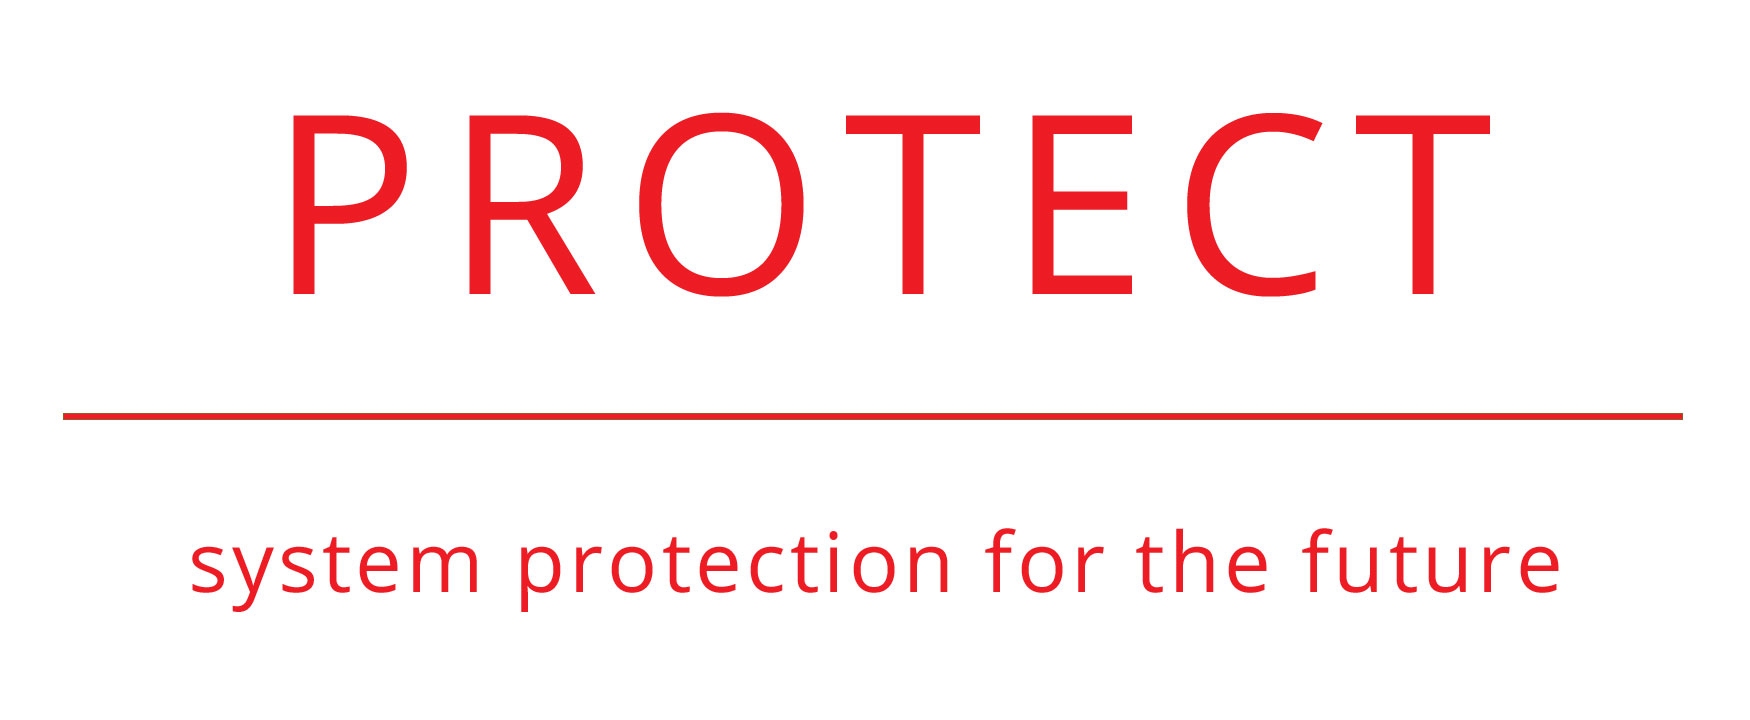 PROTECT system protection for the future